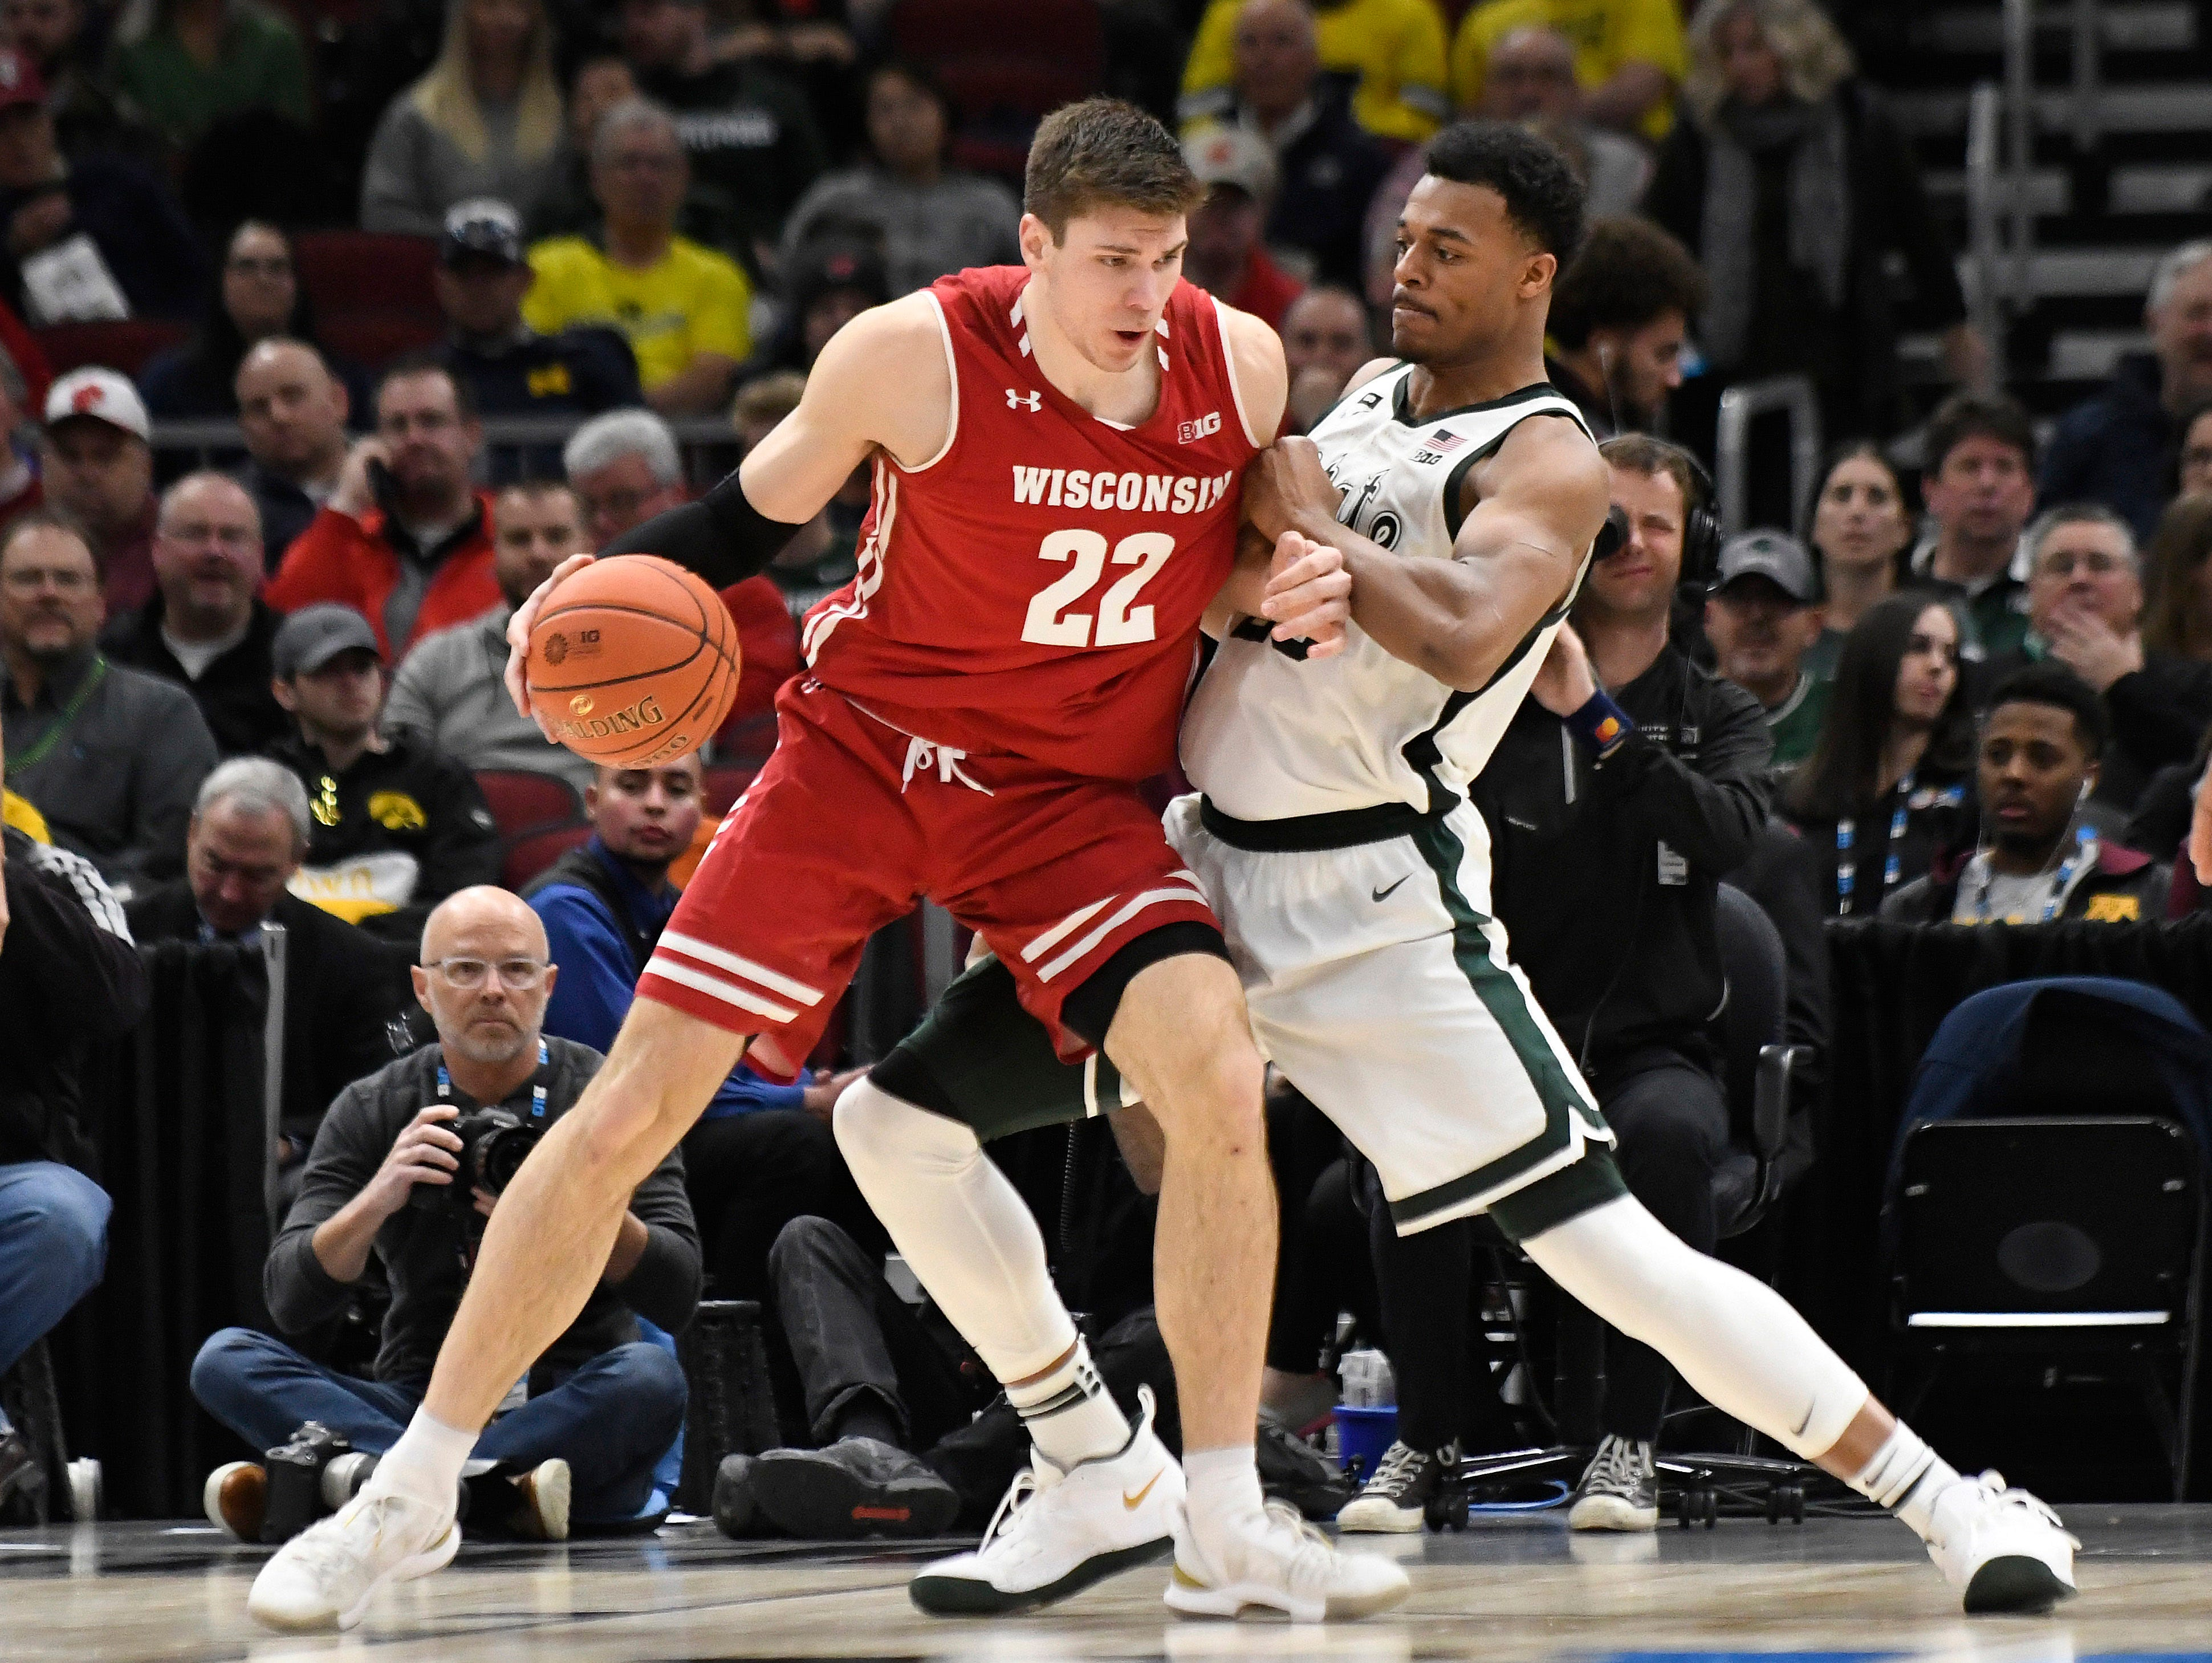 Wisconsin Badgers forward Ethan Happ (22) controls the ball as Michigan State Spartans forward Xavier Tillman (23) defends during the second half in the Big Ten conference tournament at United Center.